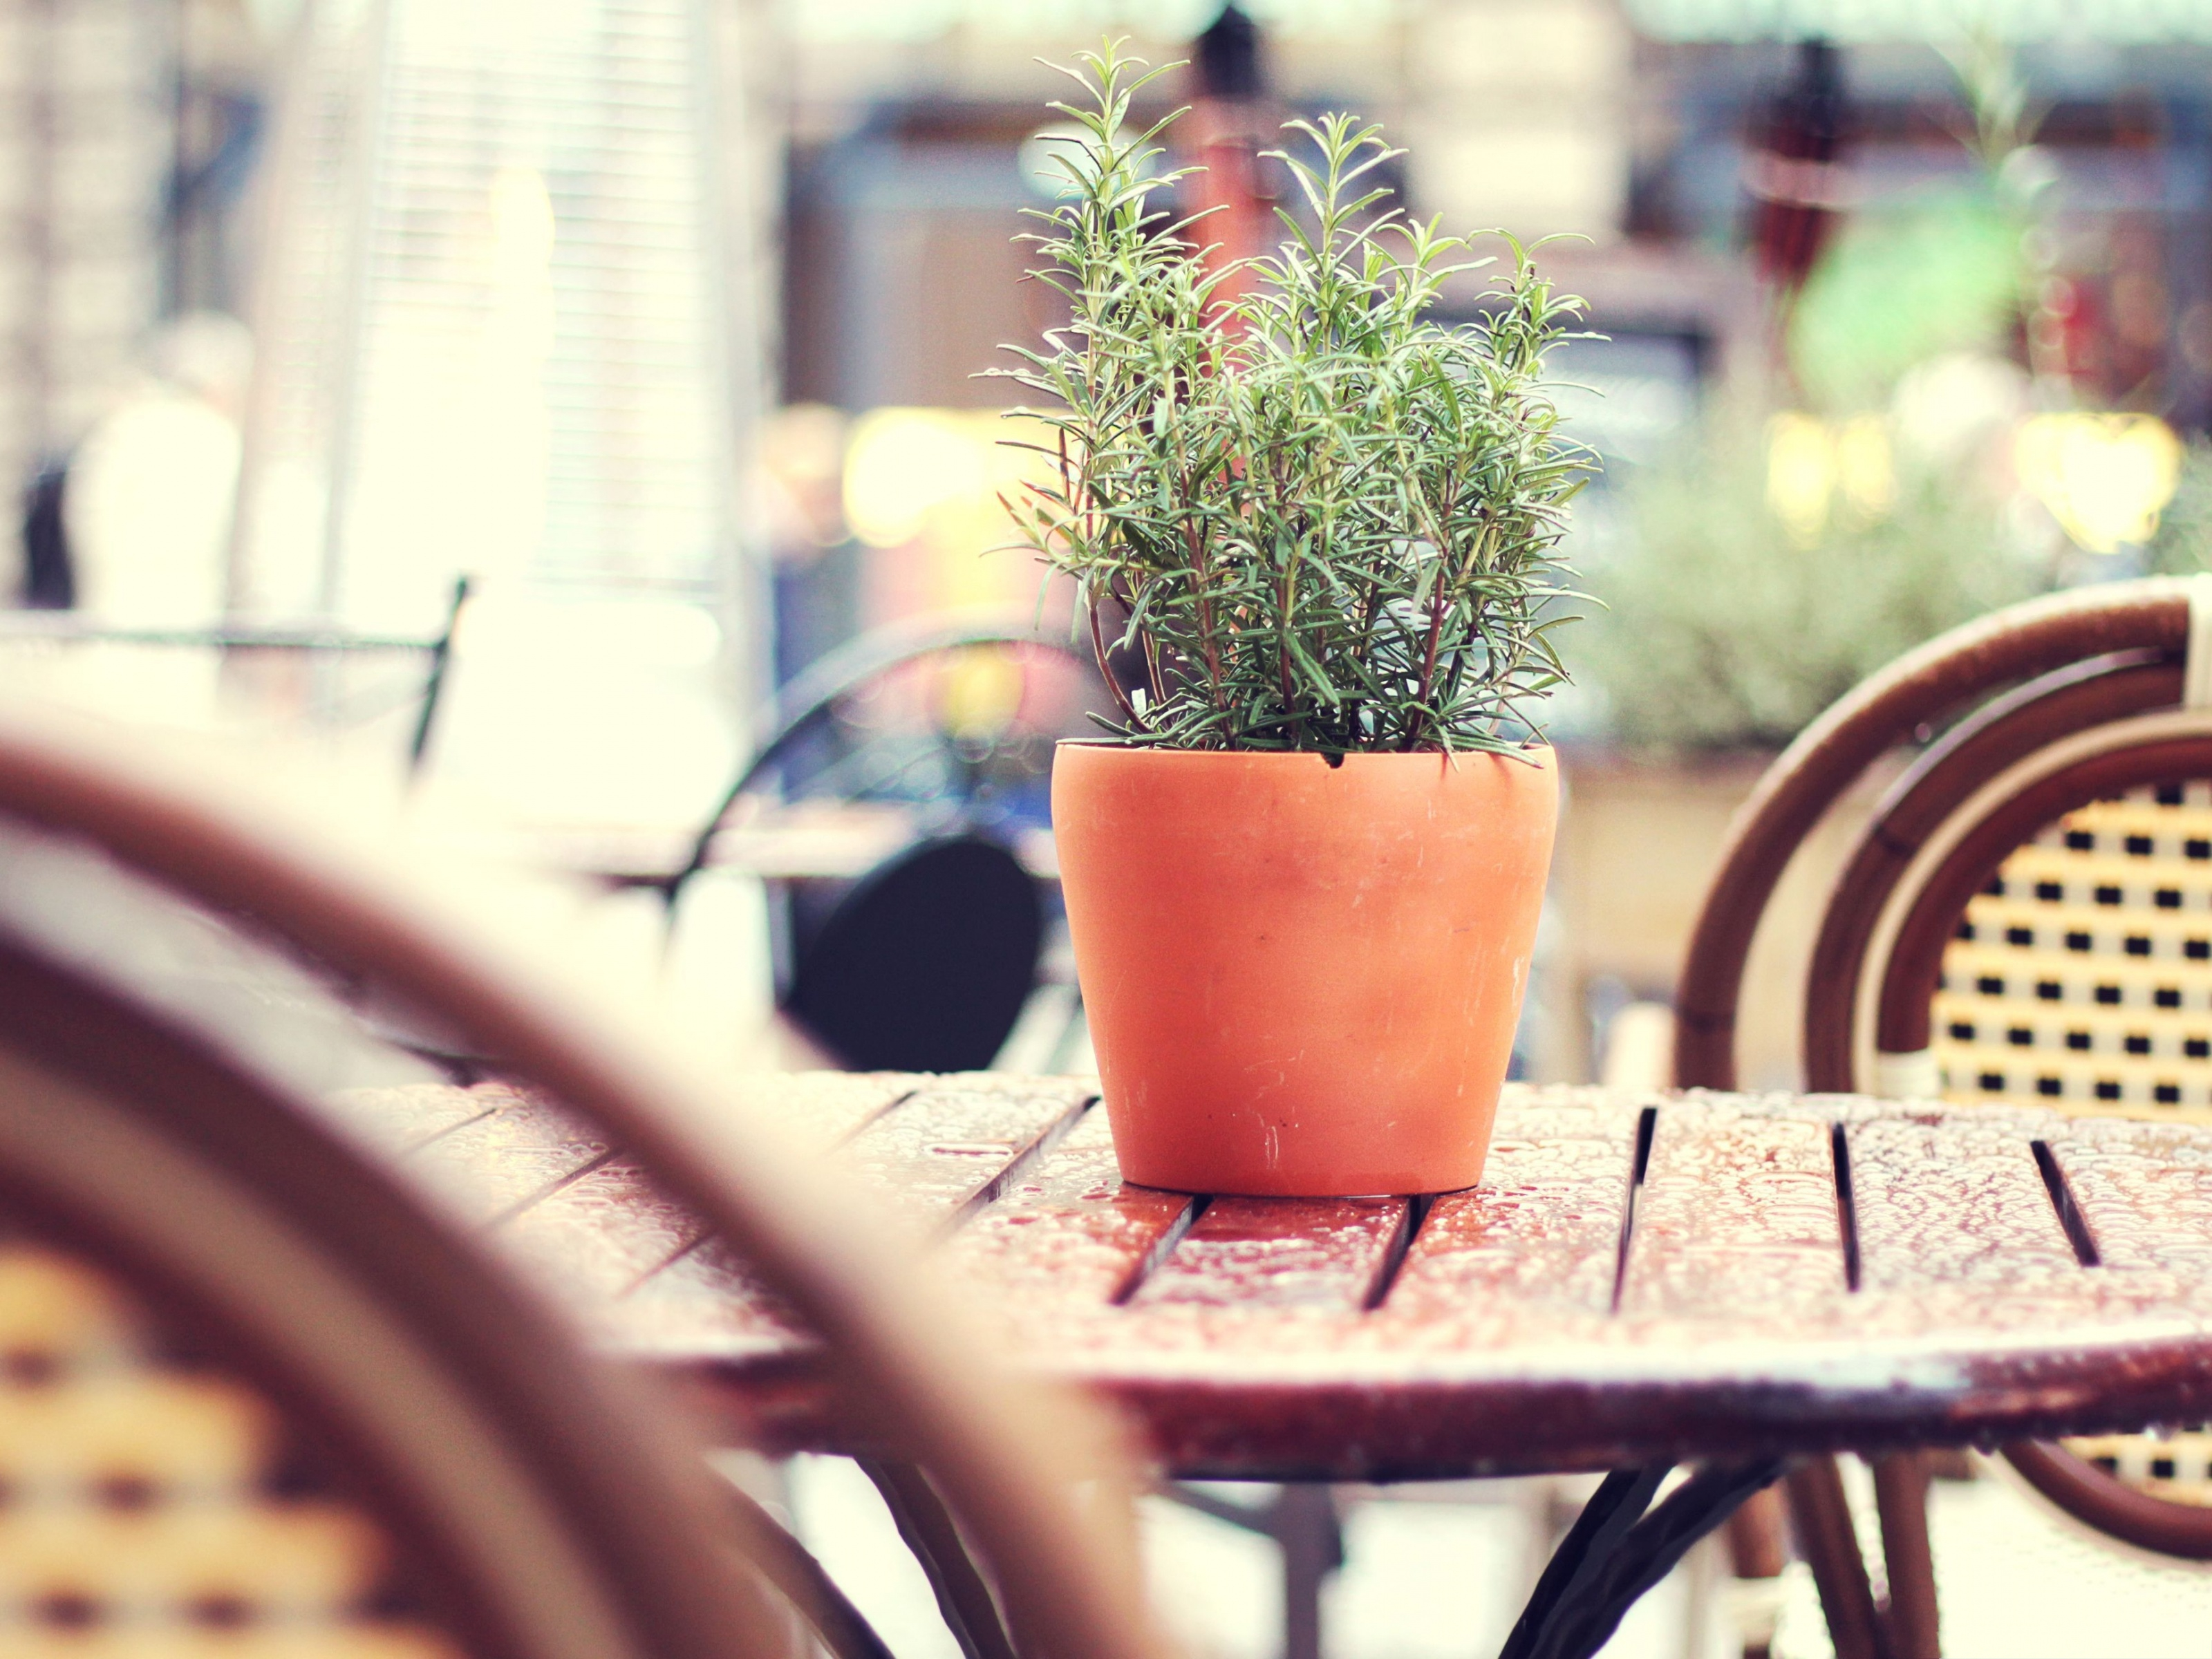 click to free download the wallpaper--Green Plant Outdoor, Plant on a Cafe Table, Fresh Air for the Customer 3200X2400 free wallpaper download